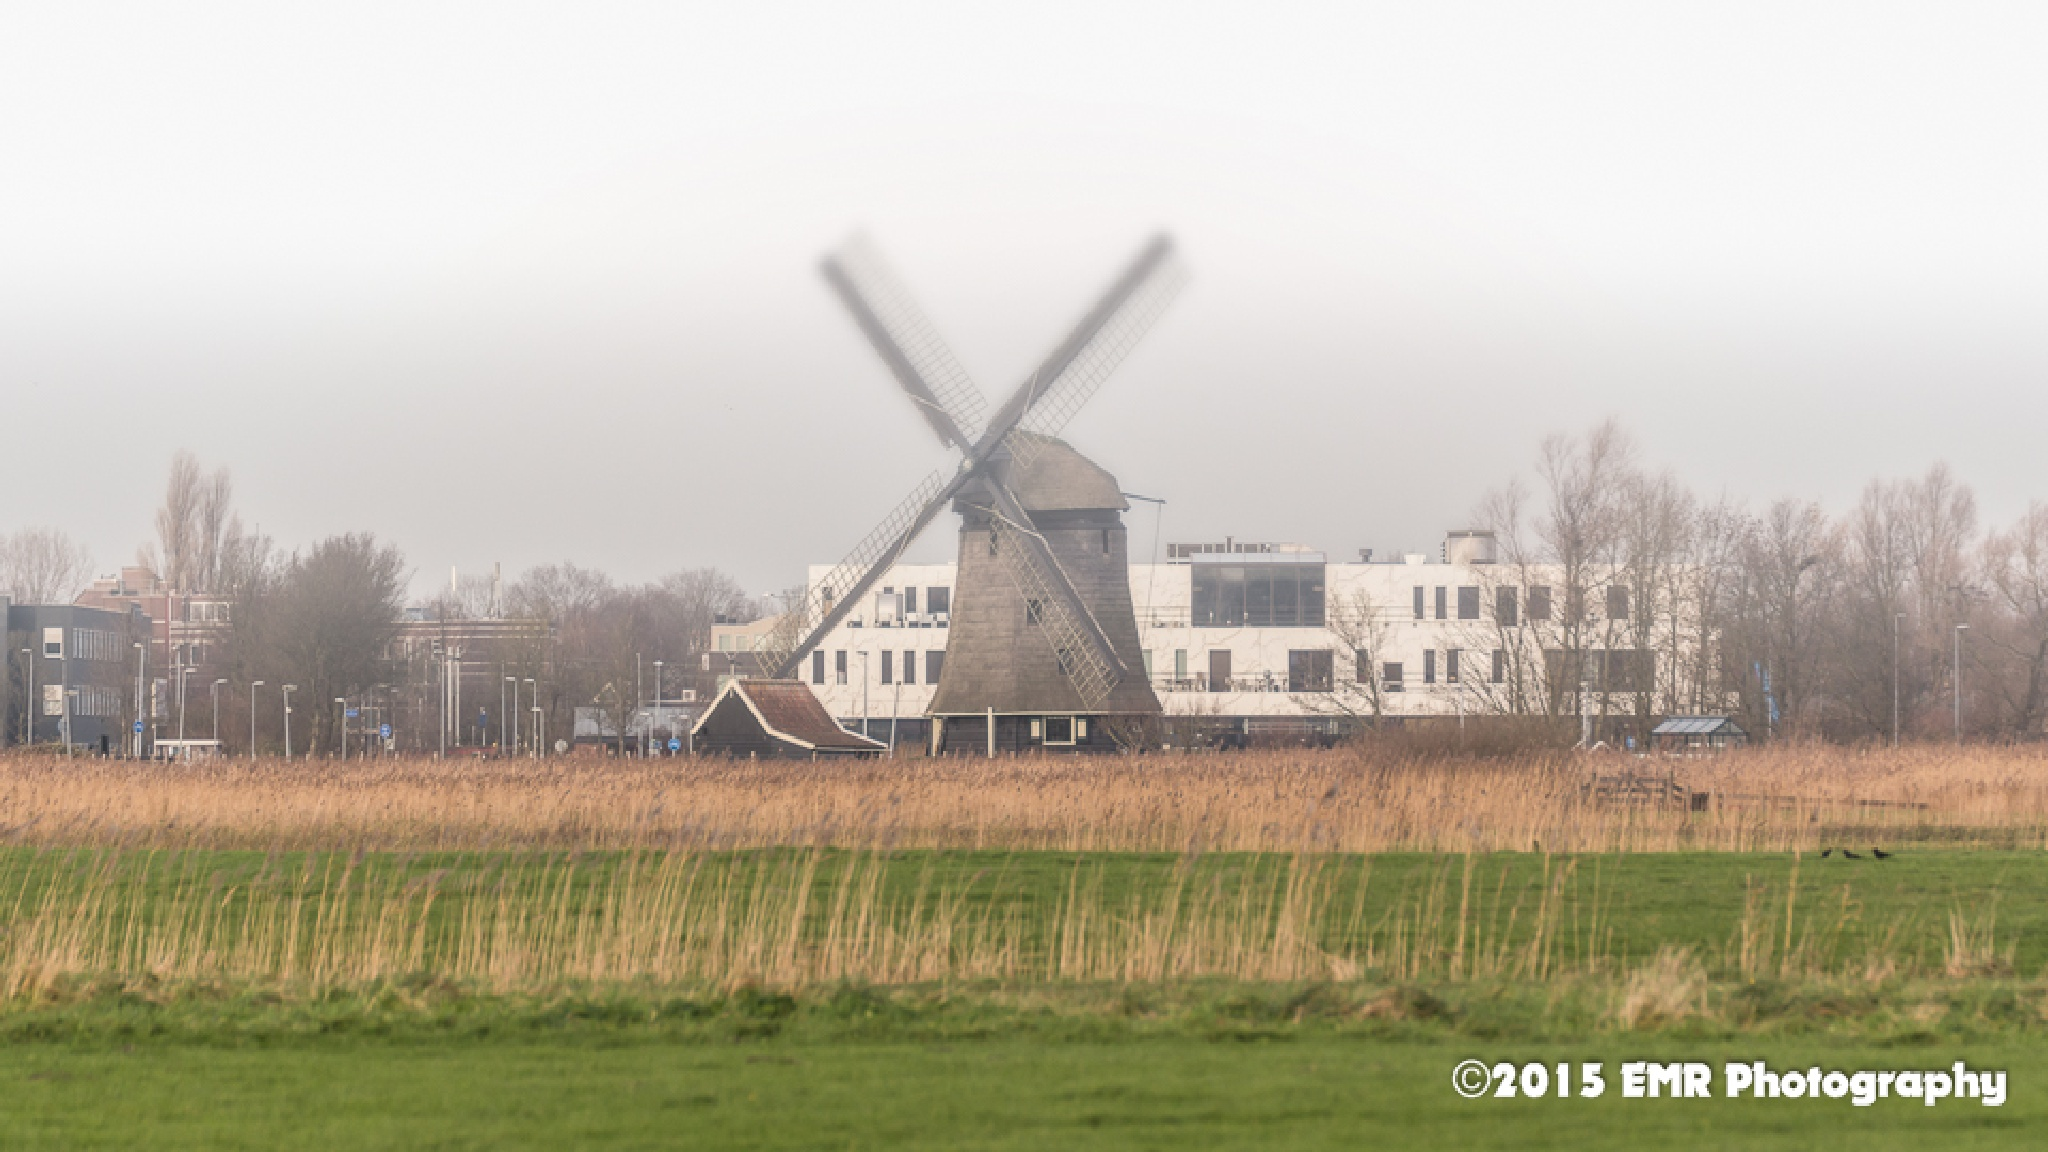 Mill by EMR Photography & Fotomodel Marijn